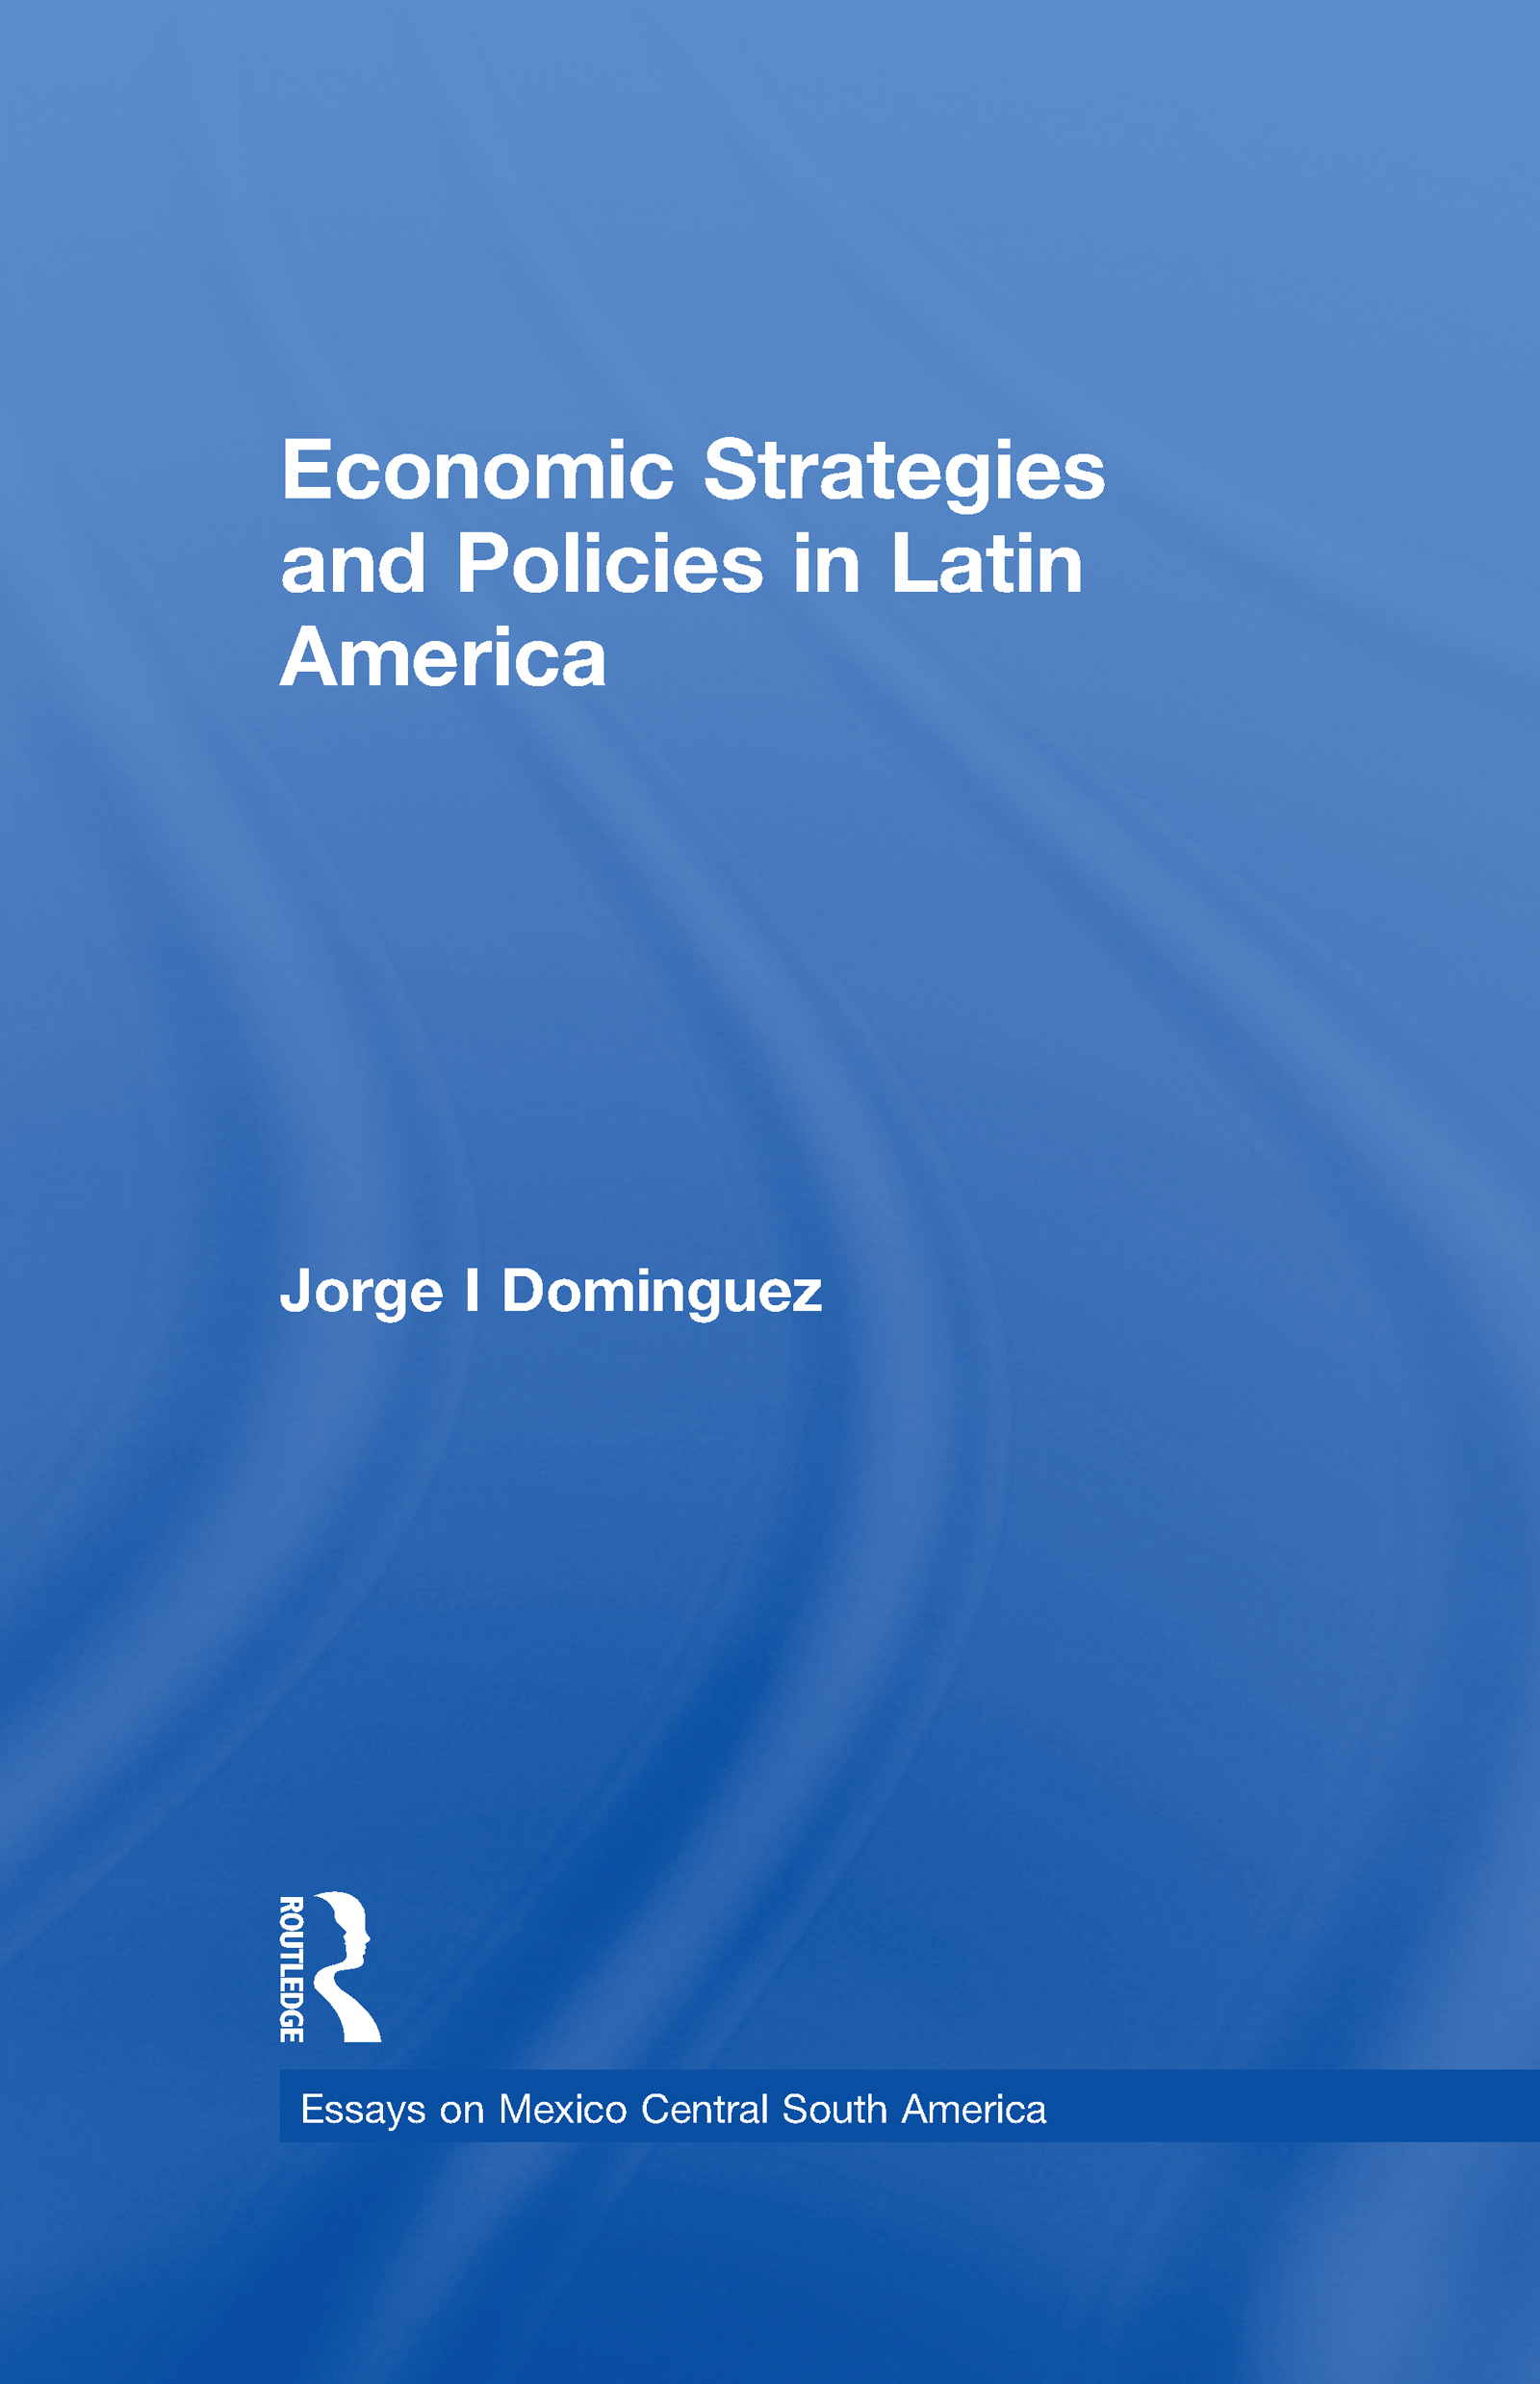 Economic Strategies and Policies in Latin America book cover